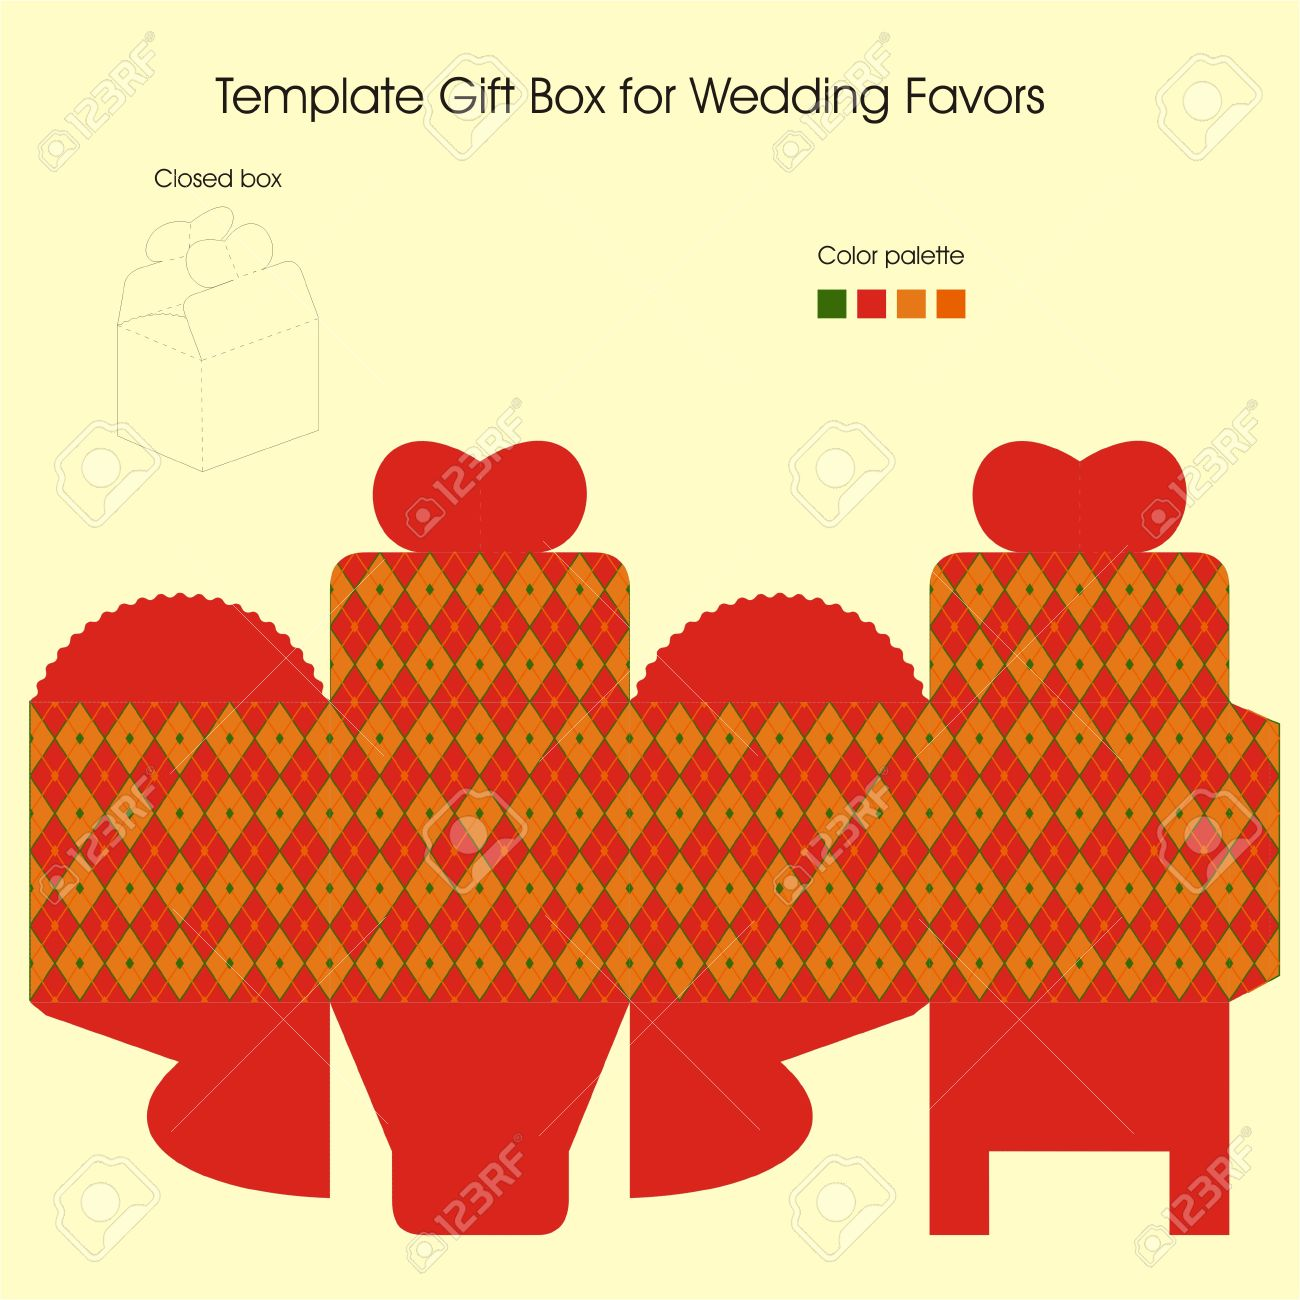 Template Gift Box For Christmas Present Royalty Free Cliparts